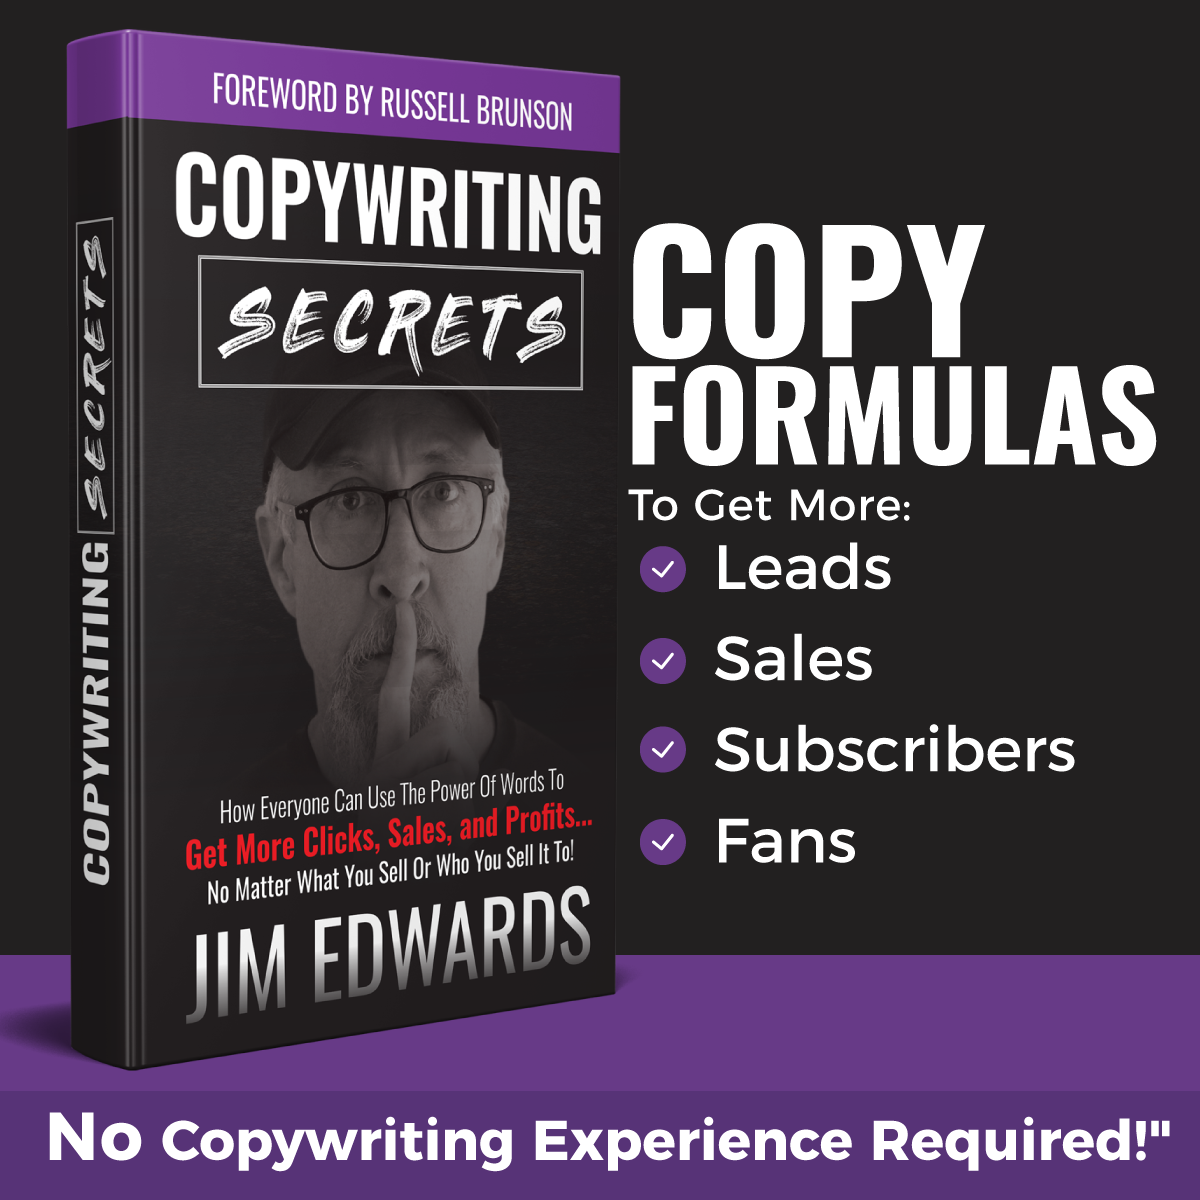 Copywriting Course For Small Business Owners